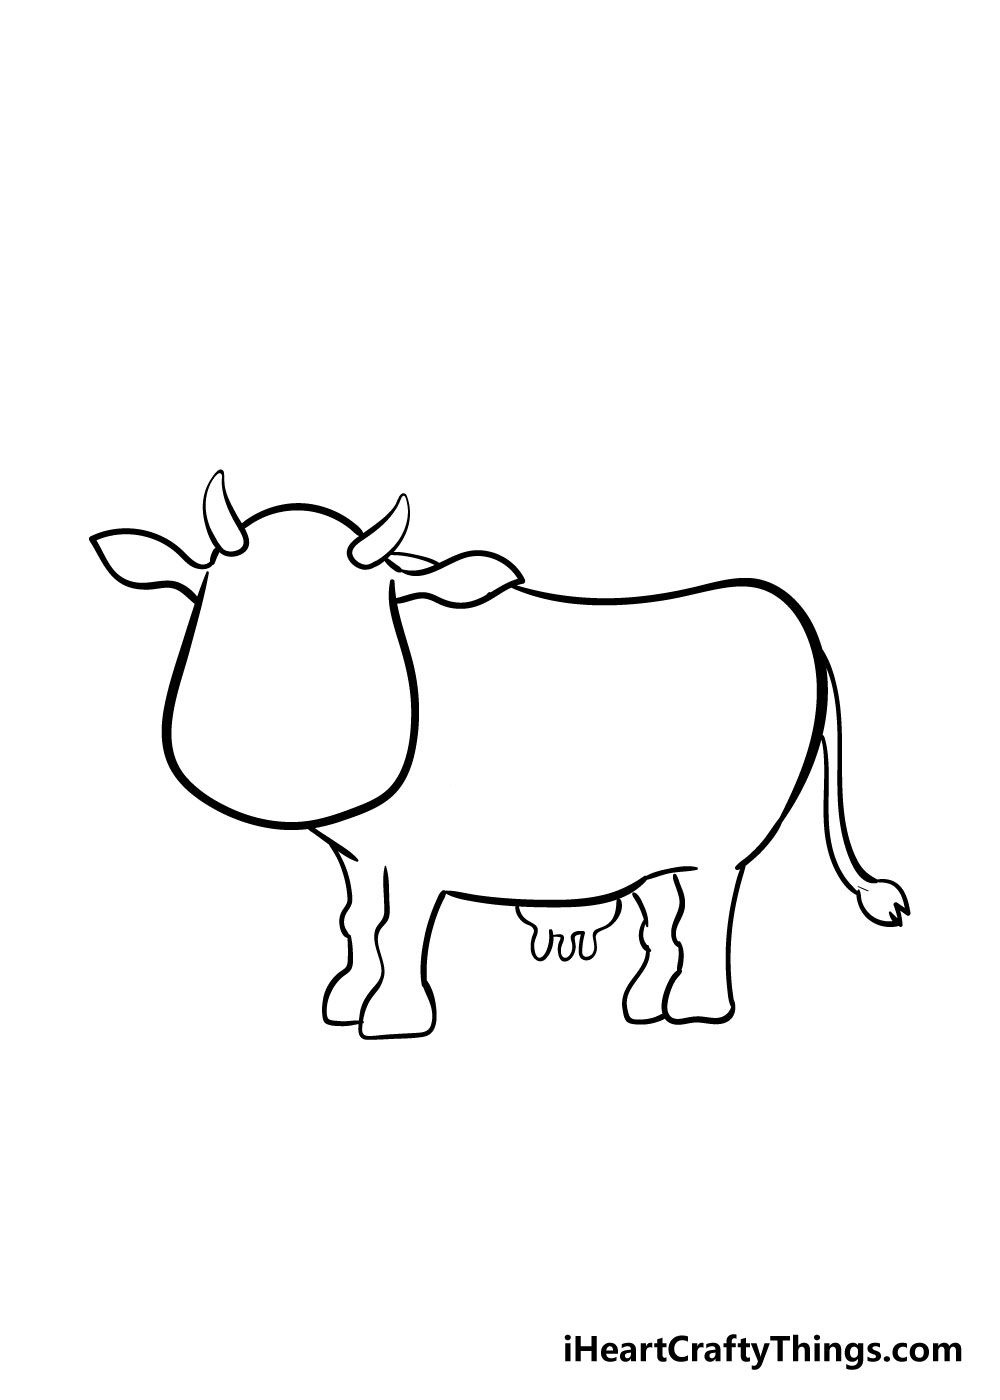 cow drawing step 6